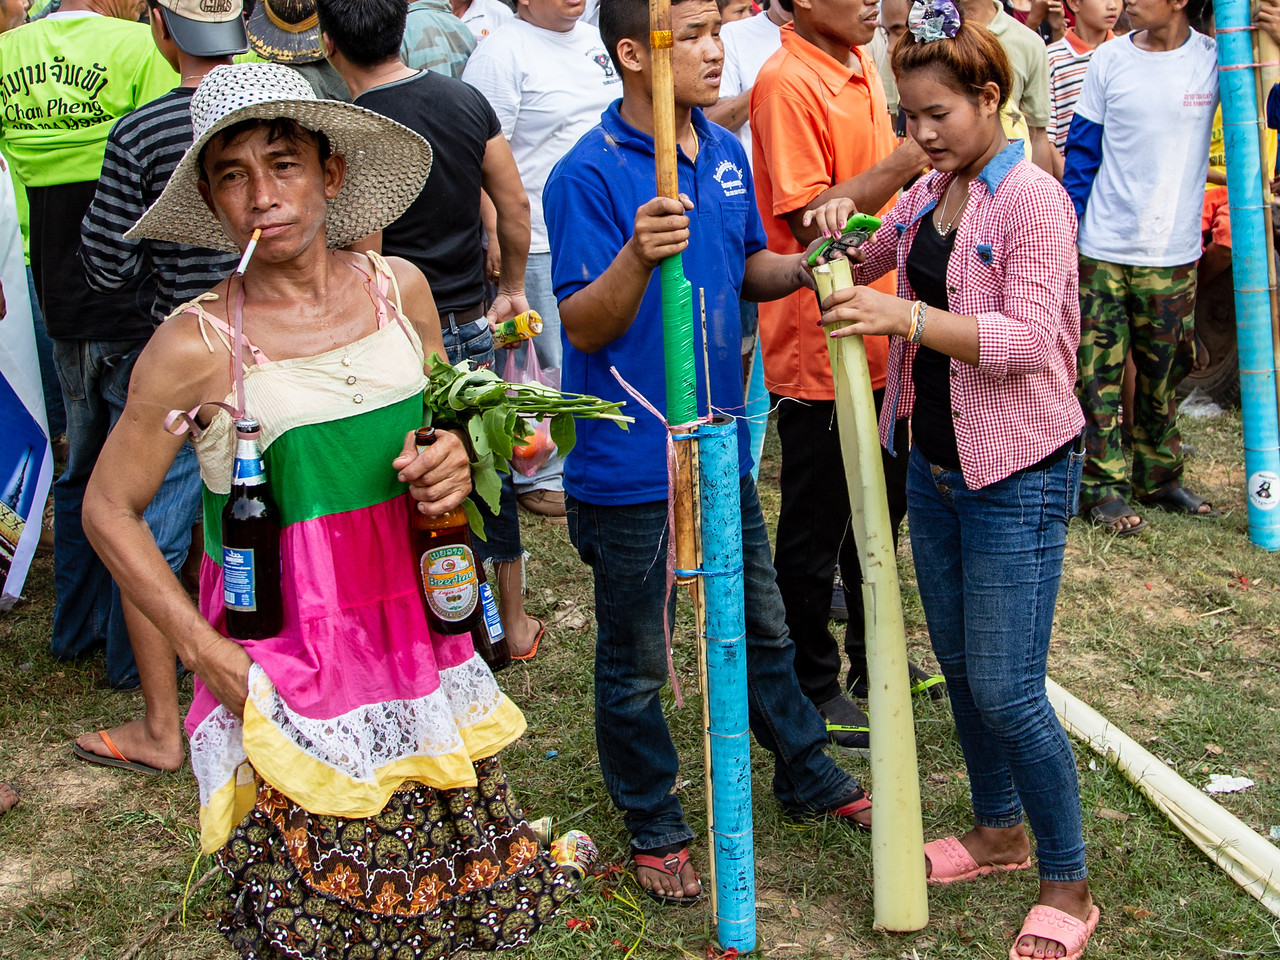 Explosives, Alcohol and Cigarettes Mix Freely at the Laos Rocket Festival